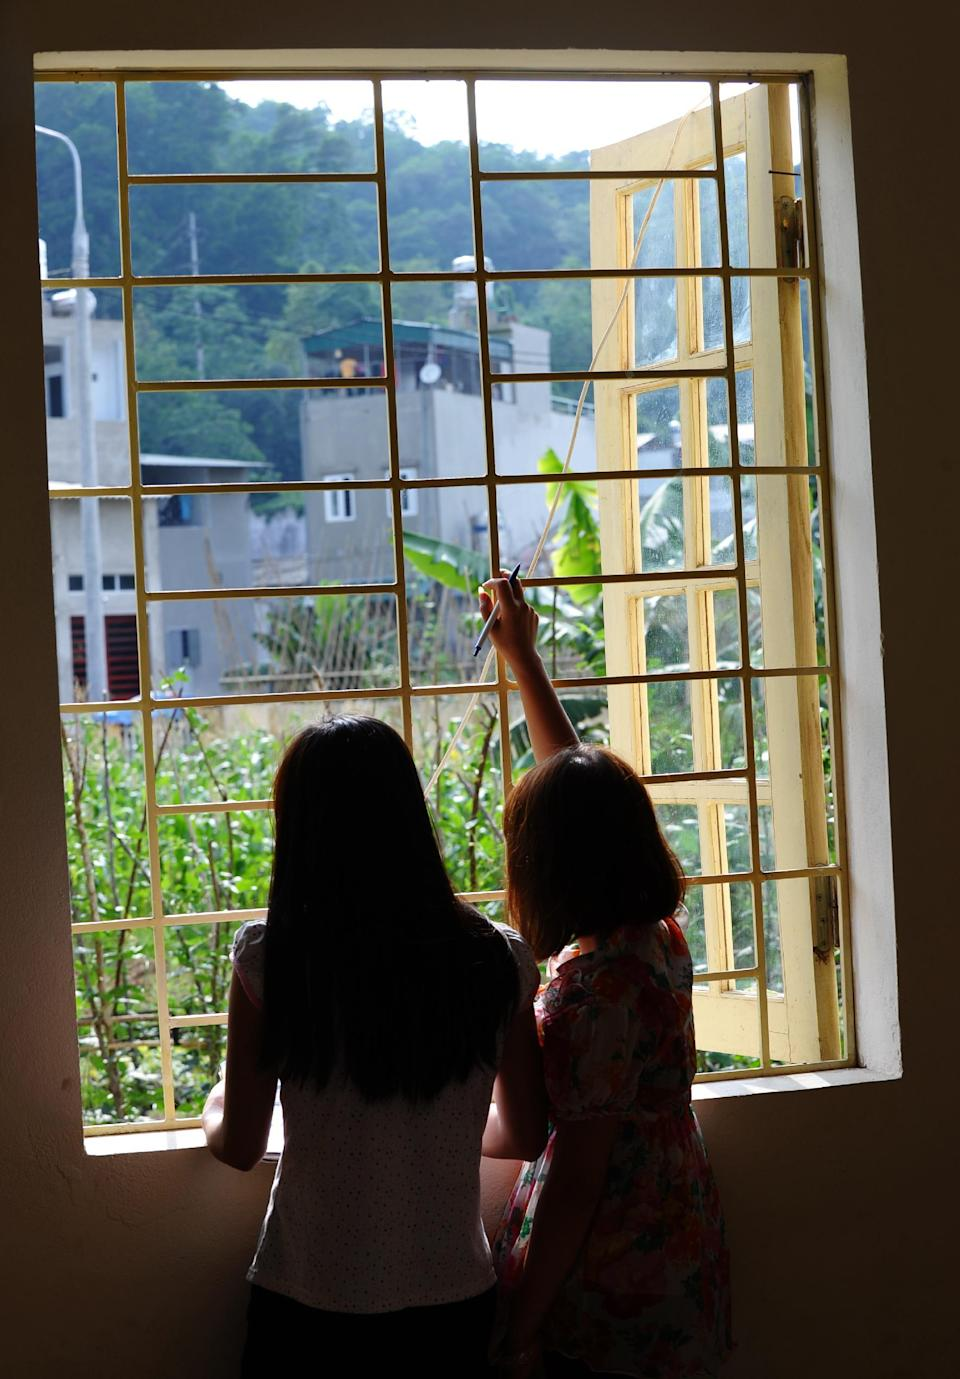 H'mong ethnic teenager May Na (L) (whose name has been changed to protect her identity) and a roommate look out from a window at a government-run centre for trafficked women in the northern city of Lao Cai, May 9, 2014 (AFP Photo/Hoang Dinh Nam)